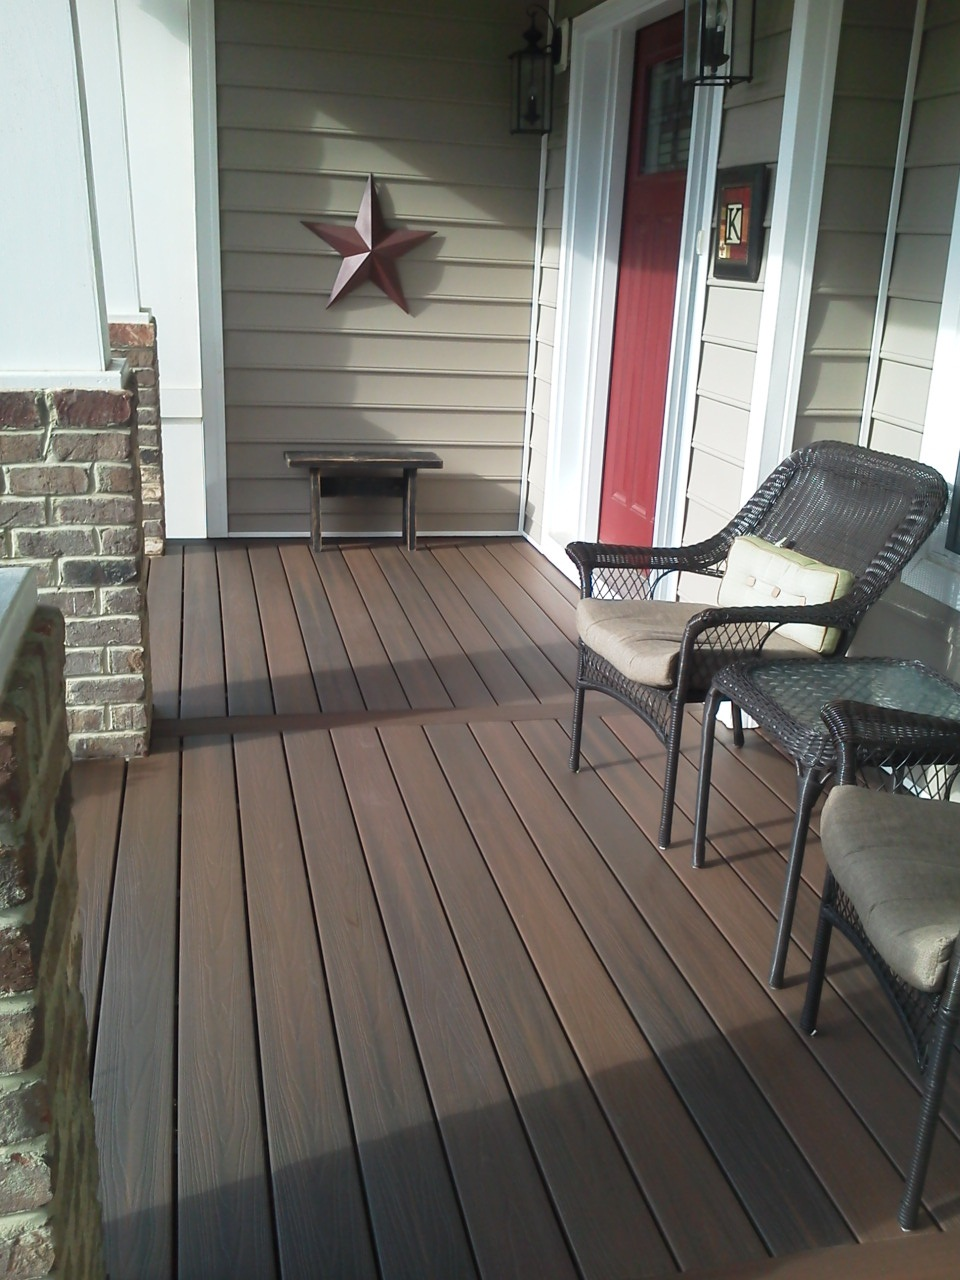 standard trex decking cost with high quality of wood matched with horizontal siding plus chairs and table for patio decor ideas